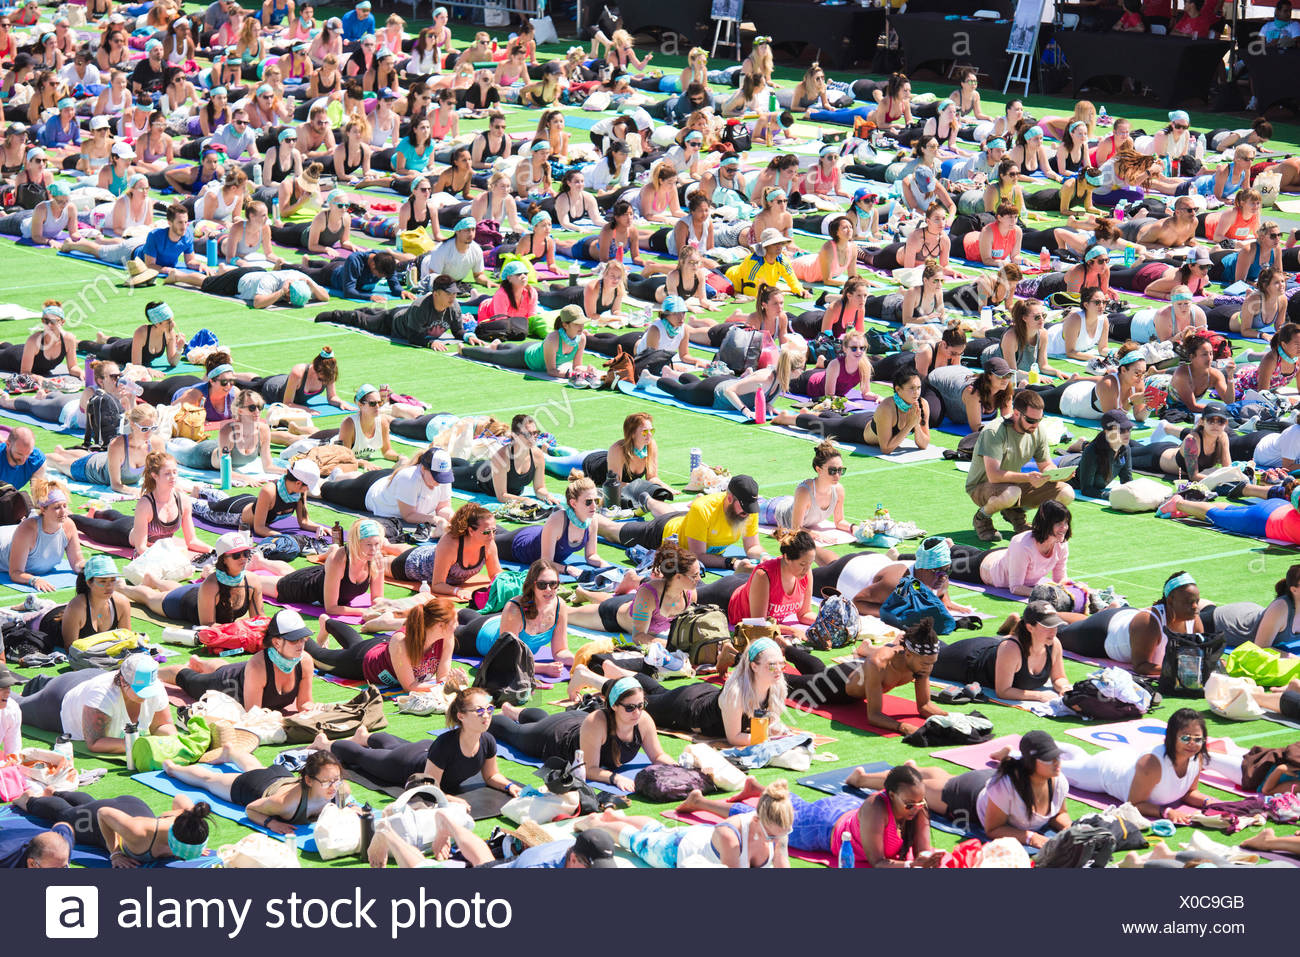 People performing sphinx pose during outdoor yoga festival on Santa Monica Pier in Santa Monica, California, USA - Stock Image